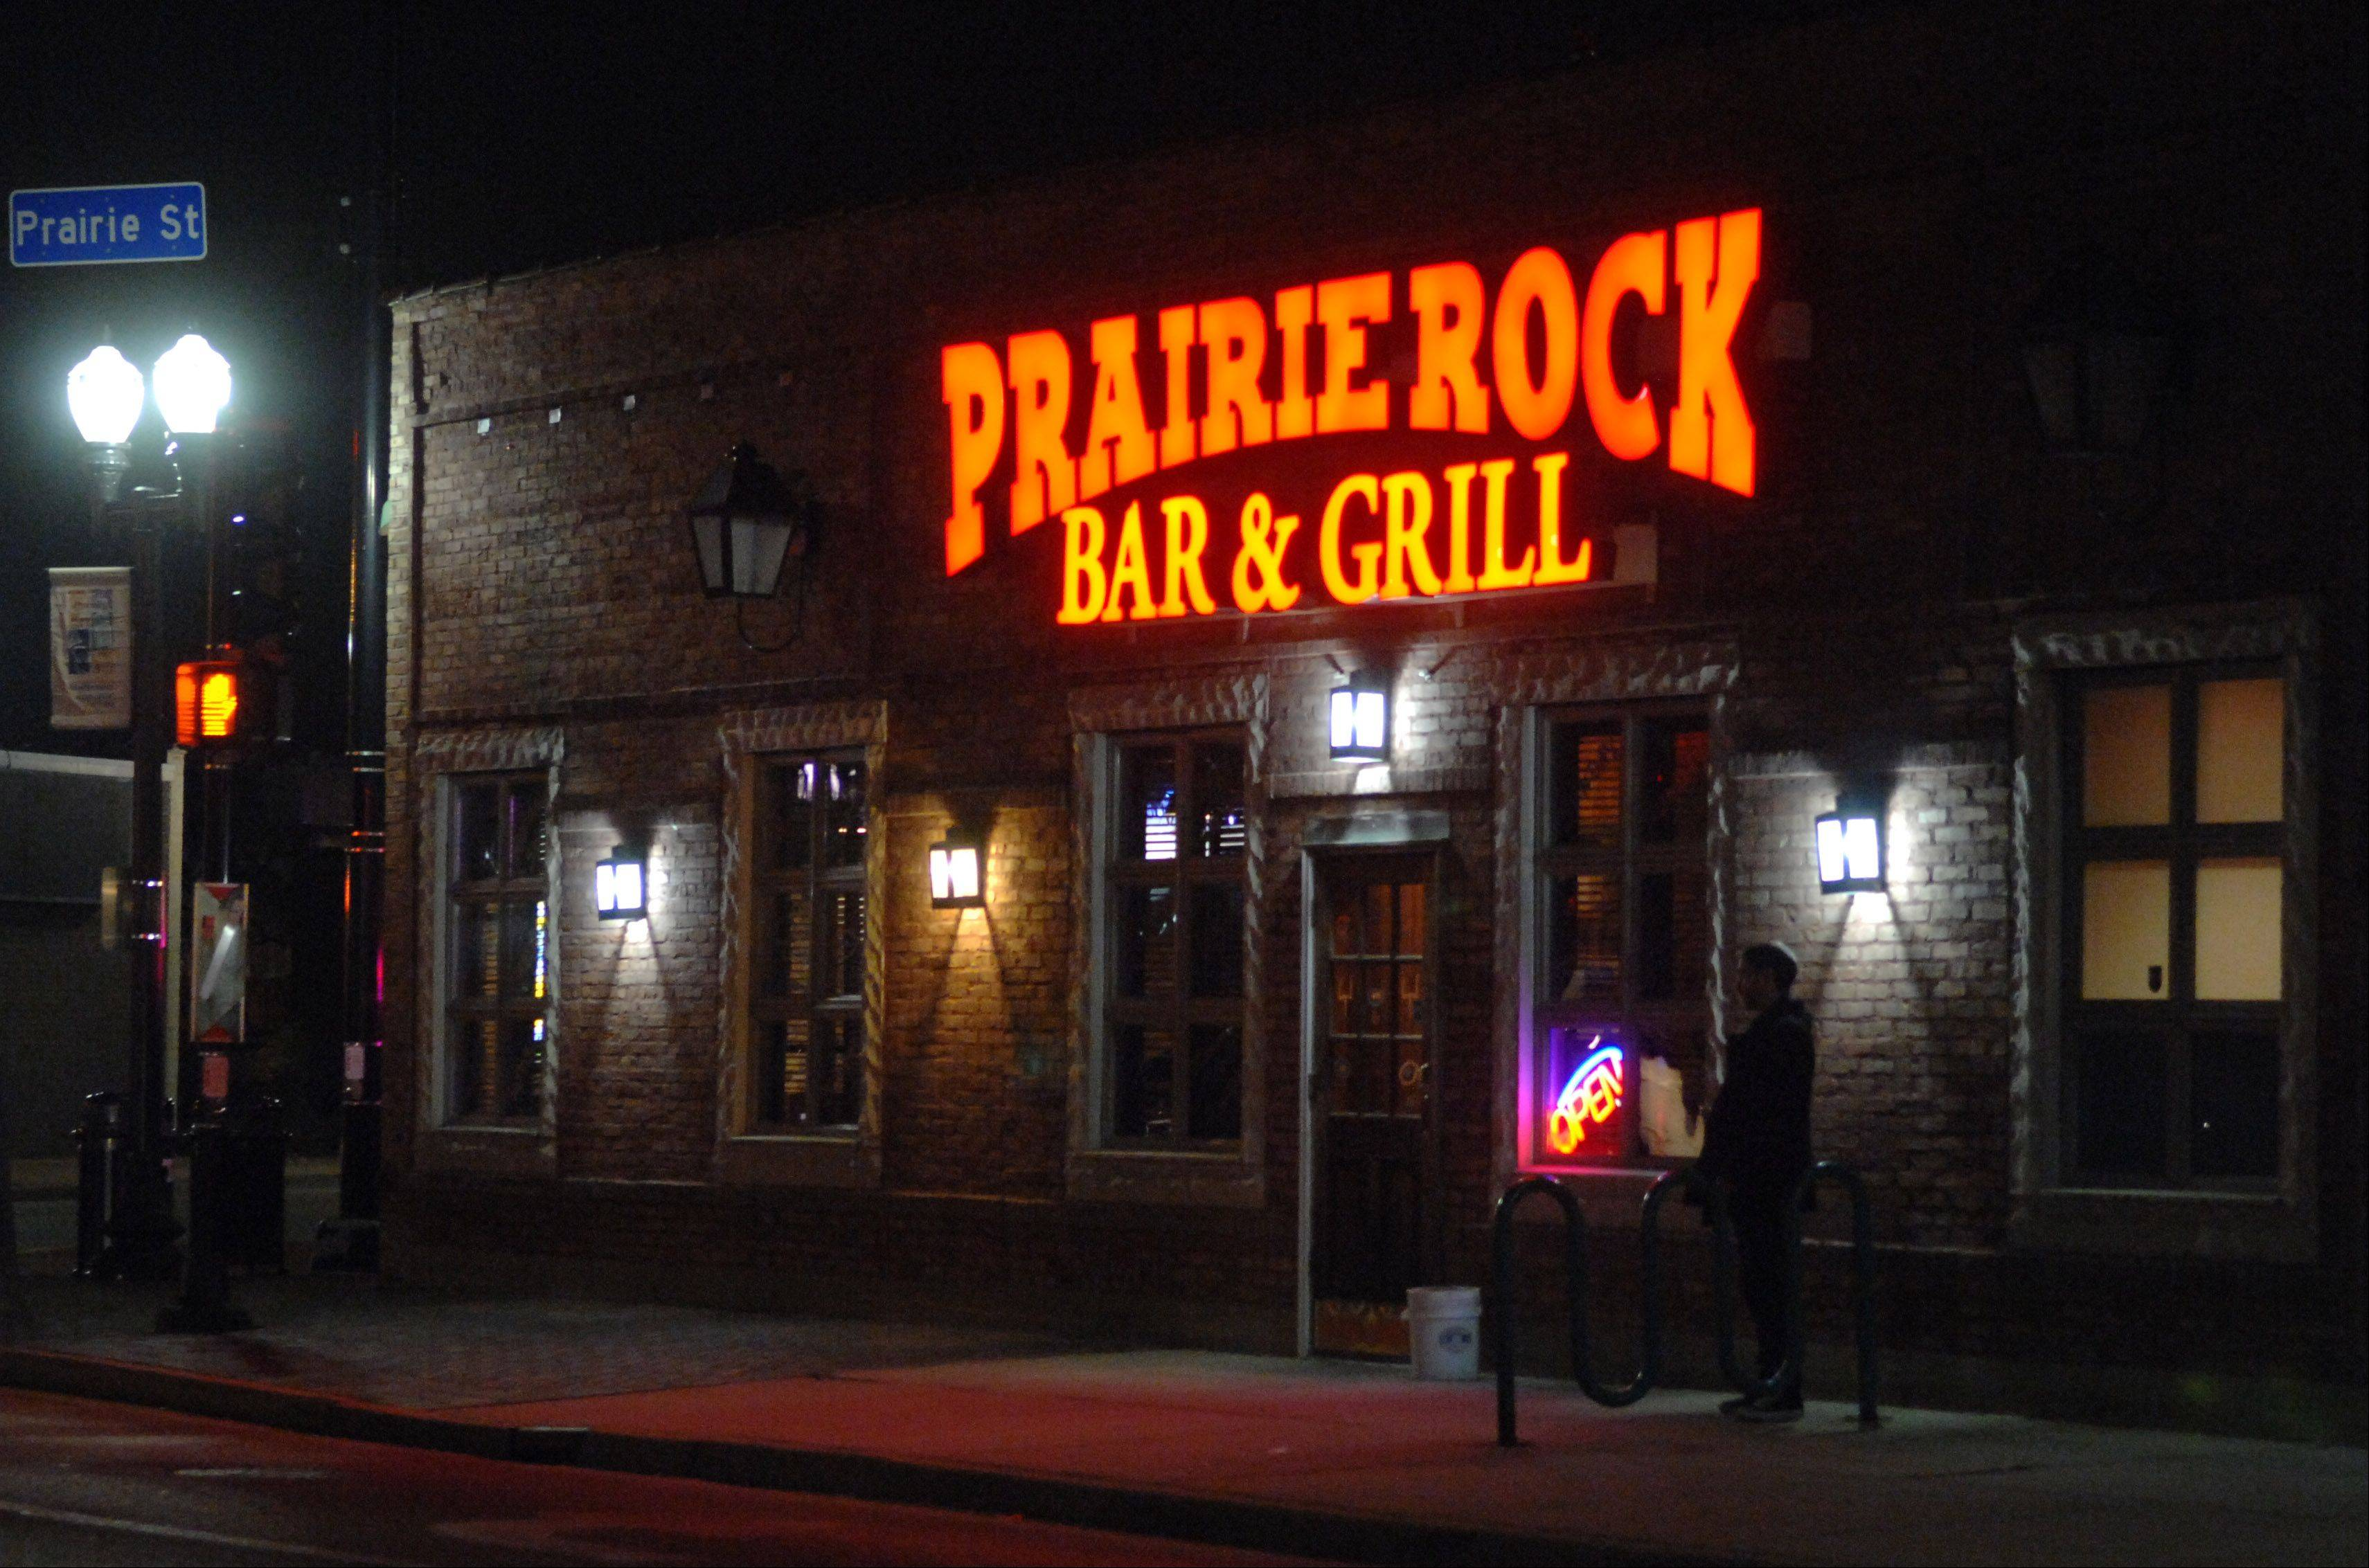 Prairie Rock Bar & Grill in Elgin reopened in March with new owners.